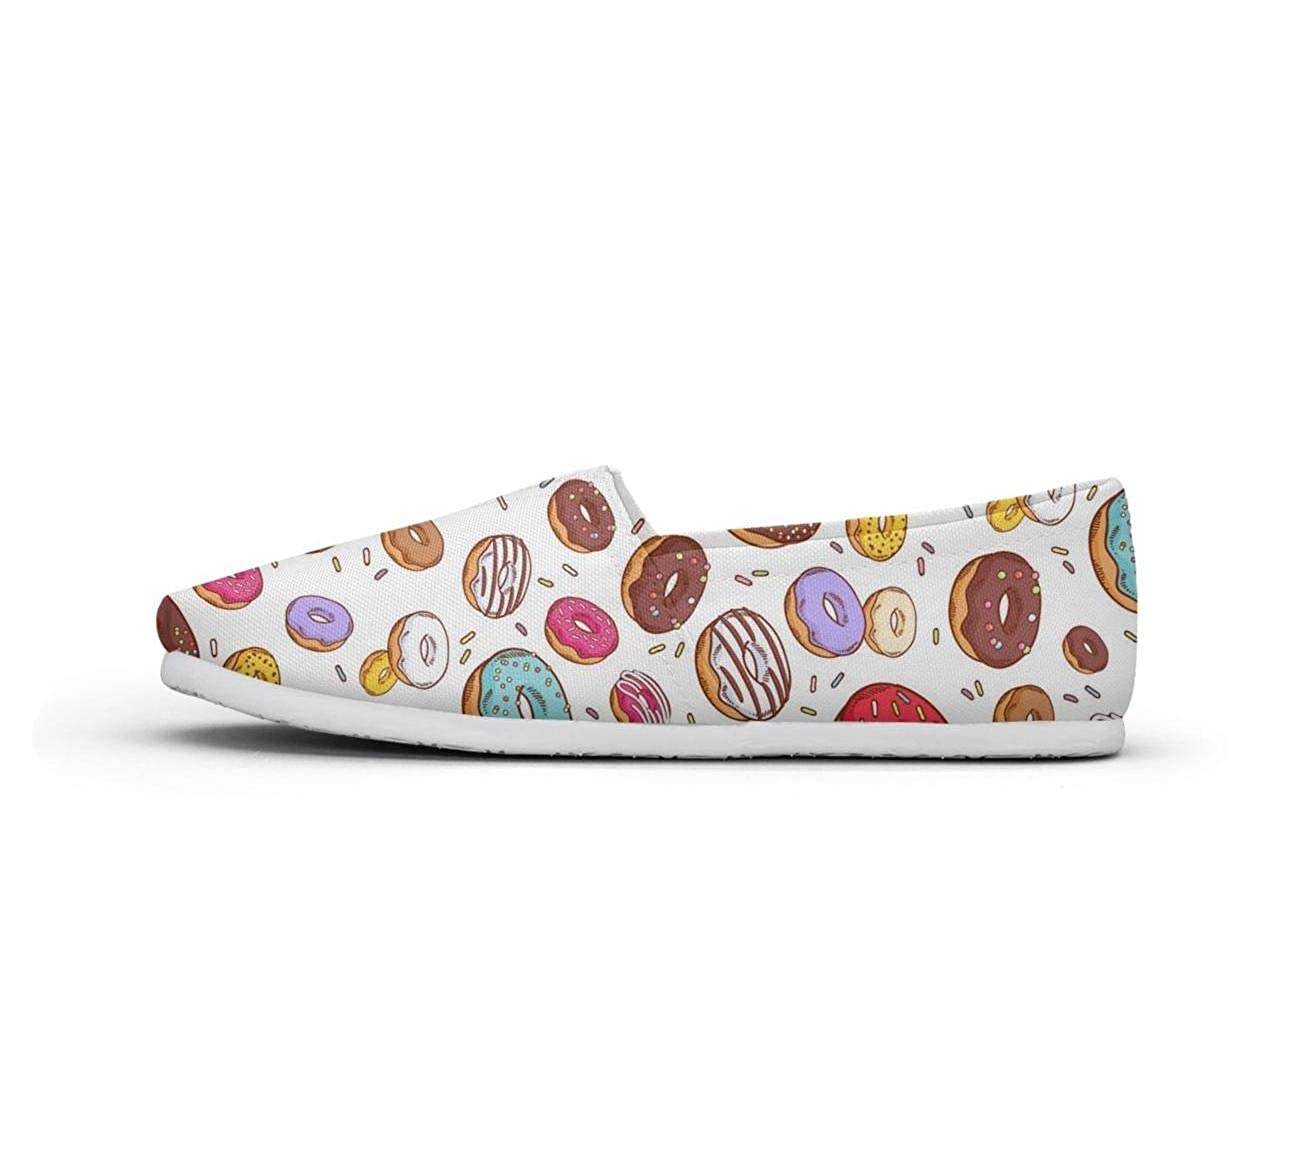 nkfbx Multi-Colored Donuts Casual Slip-On Sneakers for Girls Travel